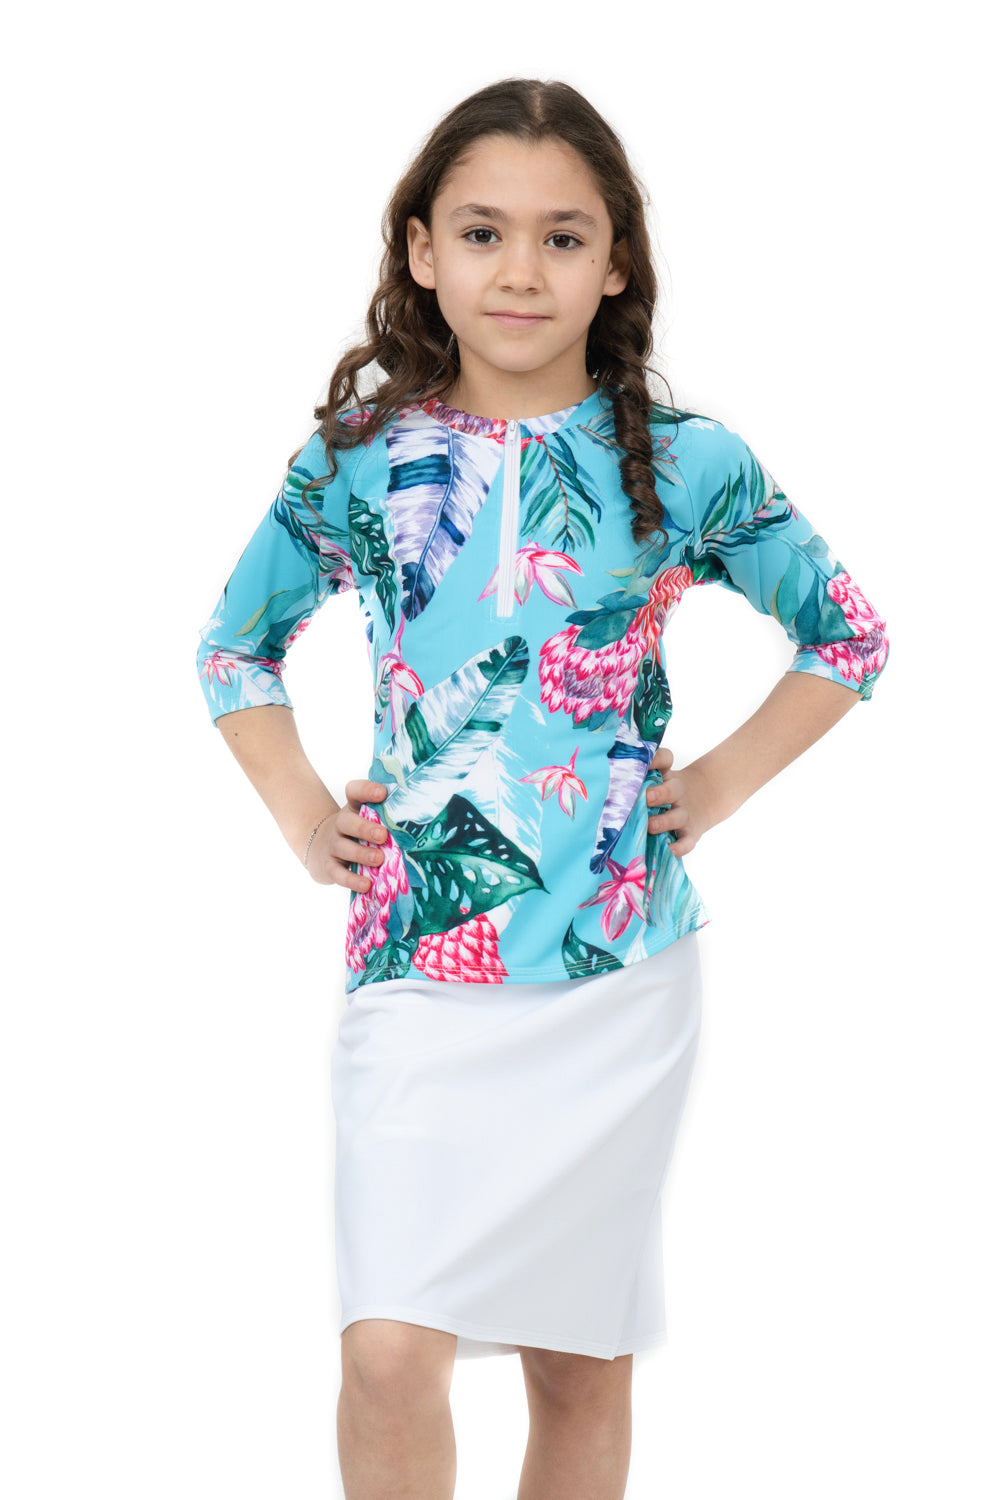 Aloha Girls 2-Piece set